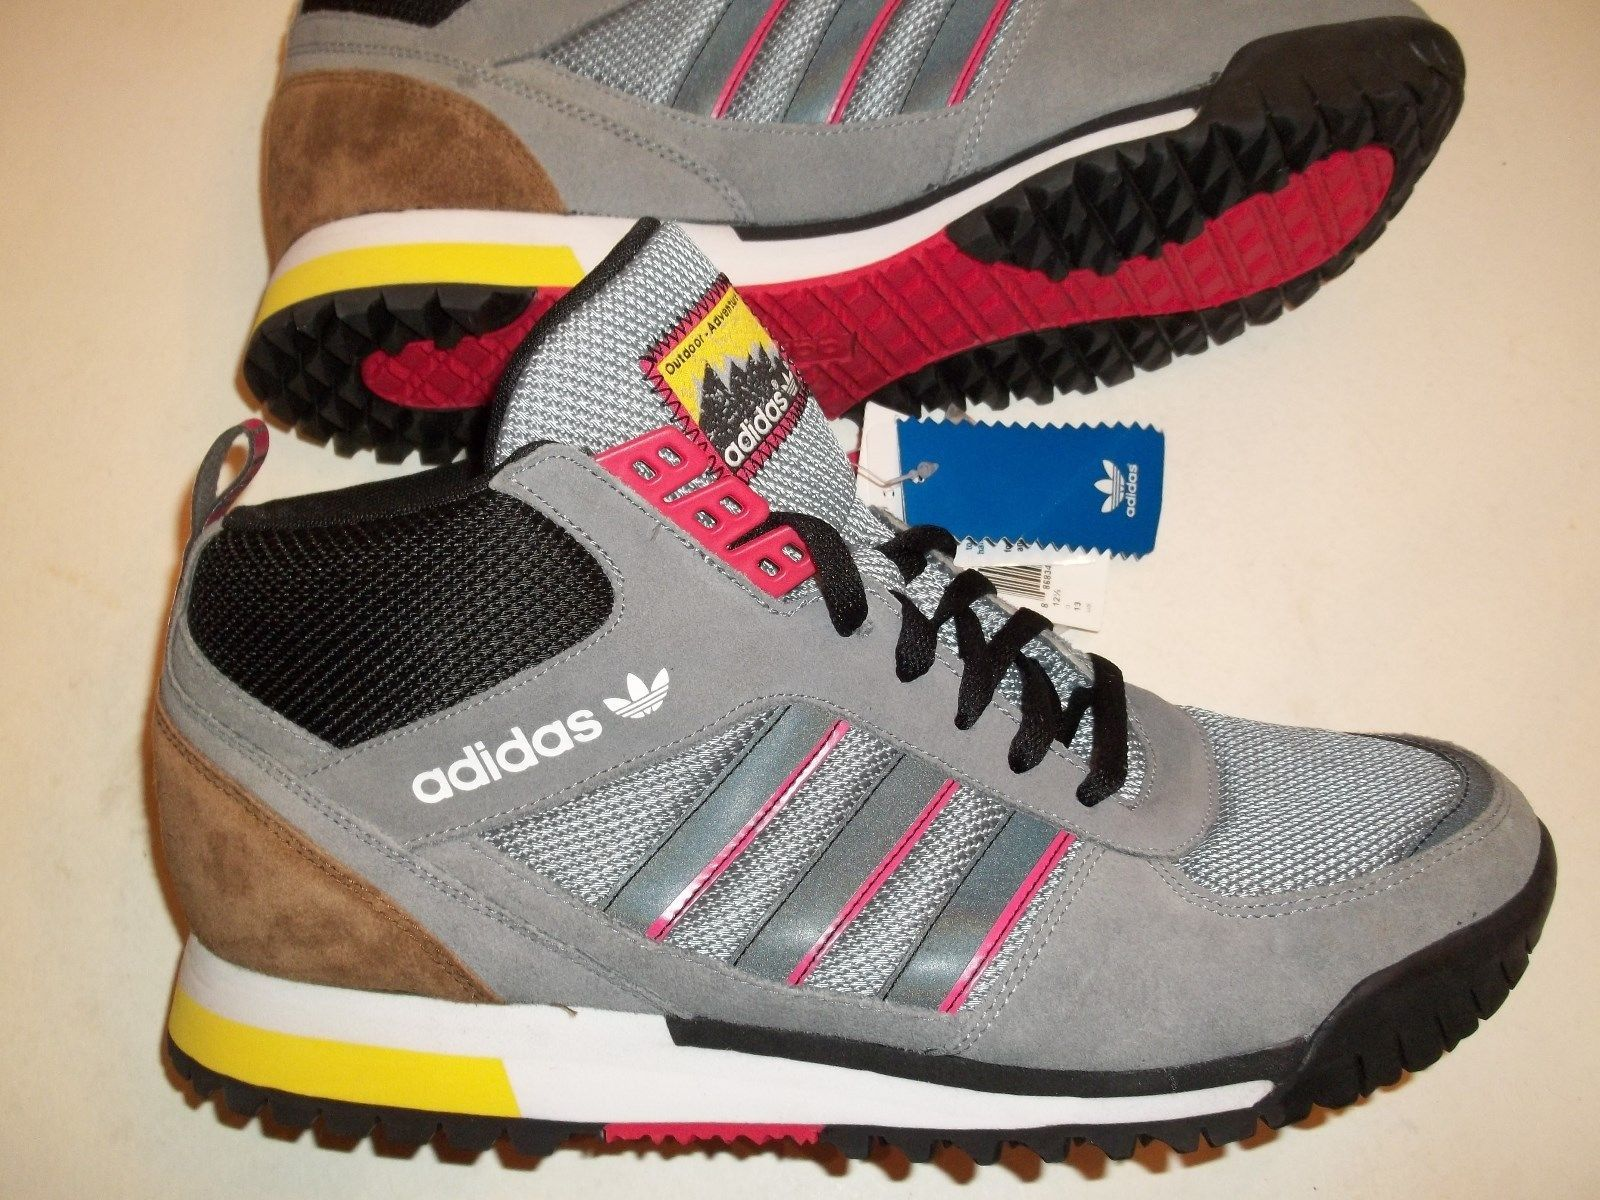 8a4c5908d New With Tags Adidas ZX TR Mid Men s Size 13 Shoes Outdoor Adventure G66274